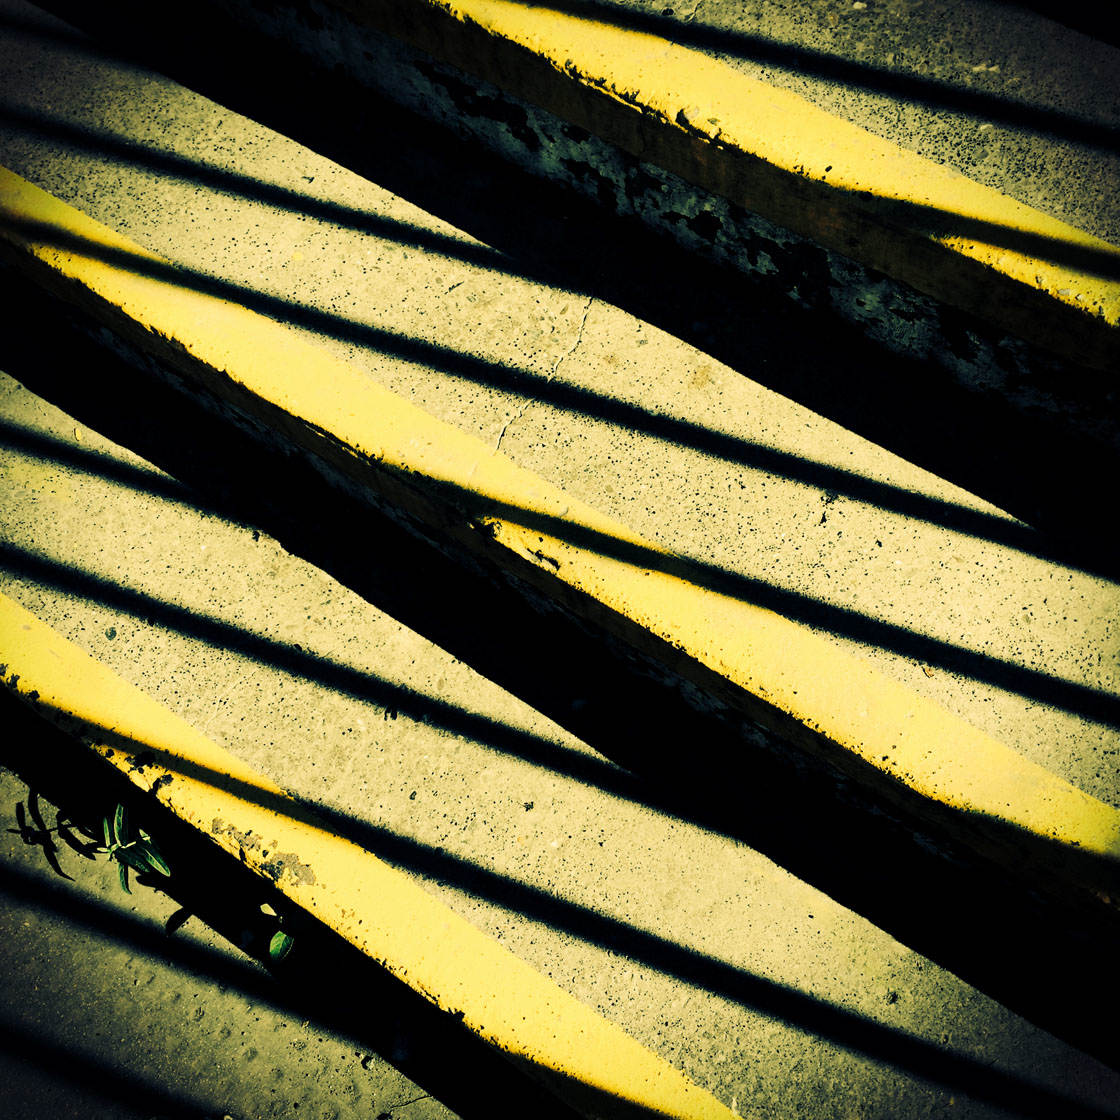 Abstract iPhone Photos 11 no script